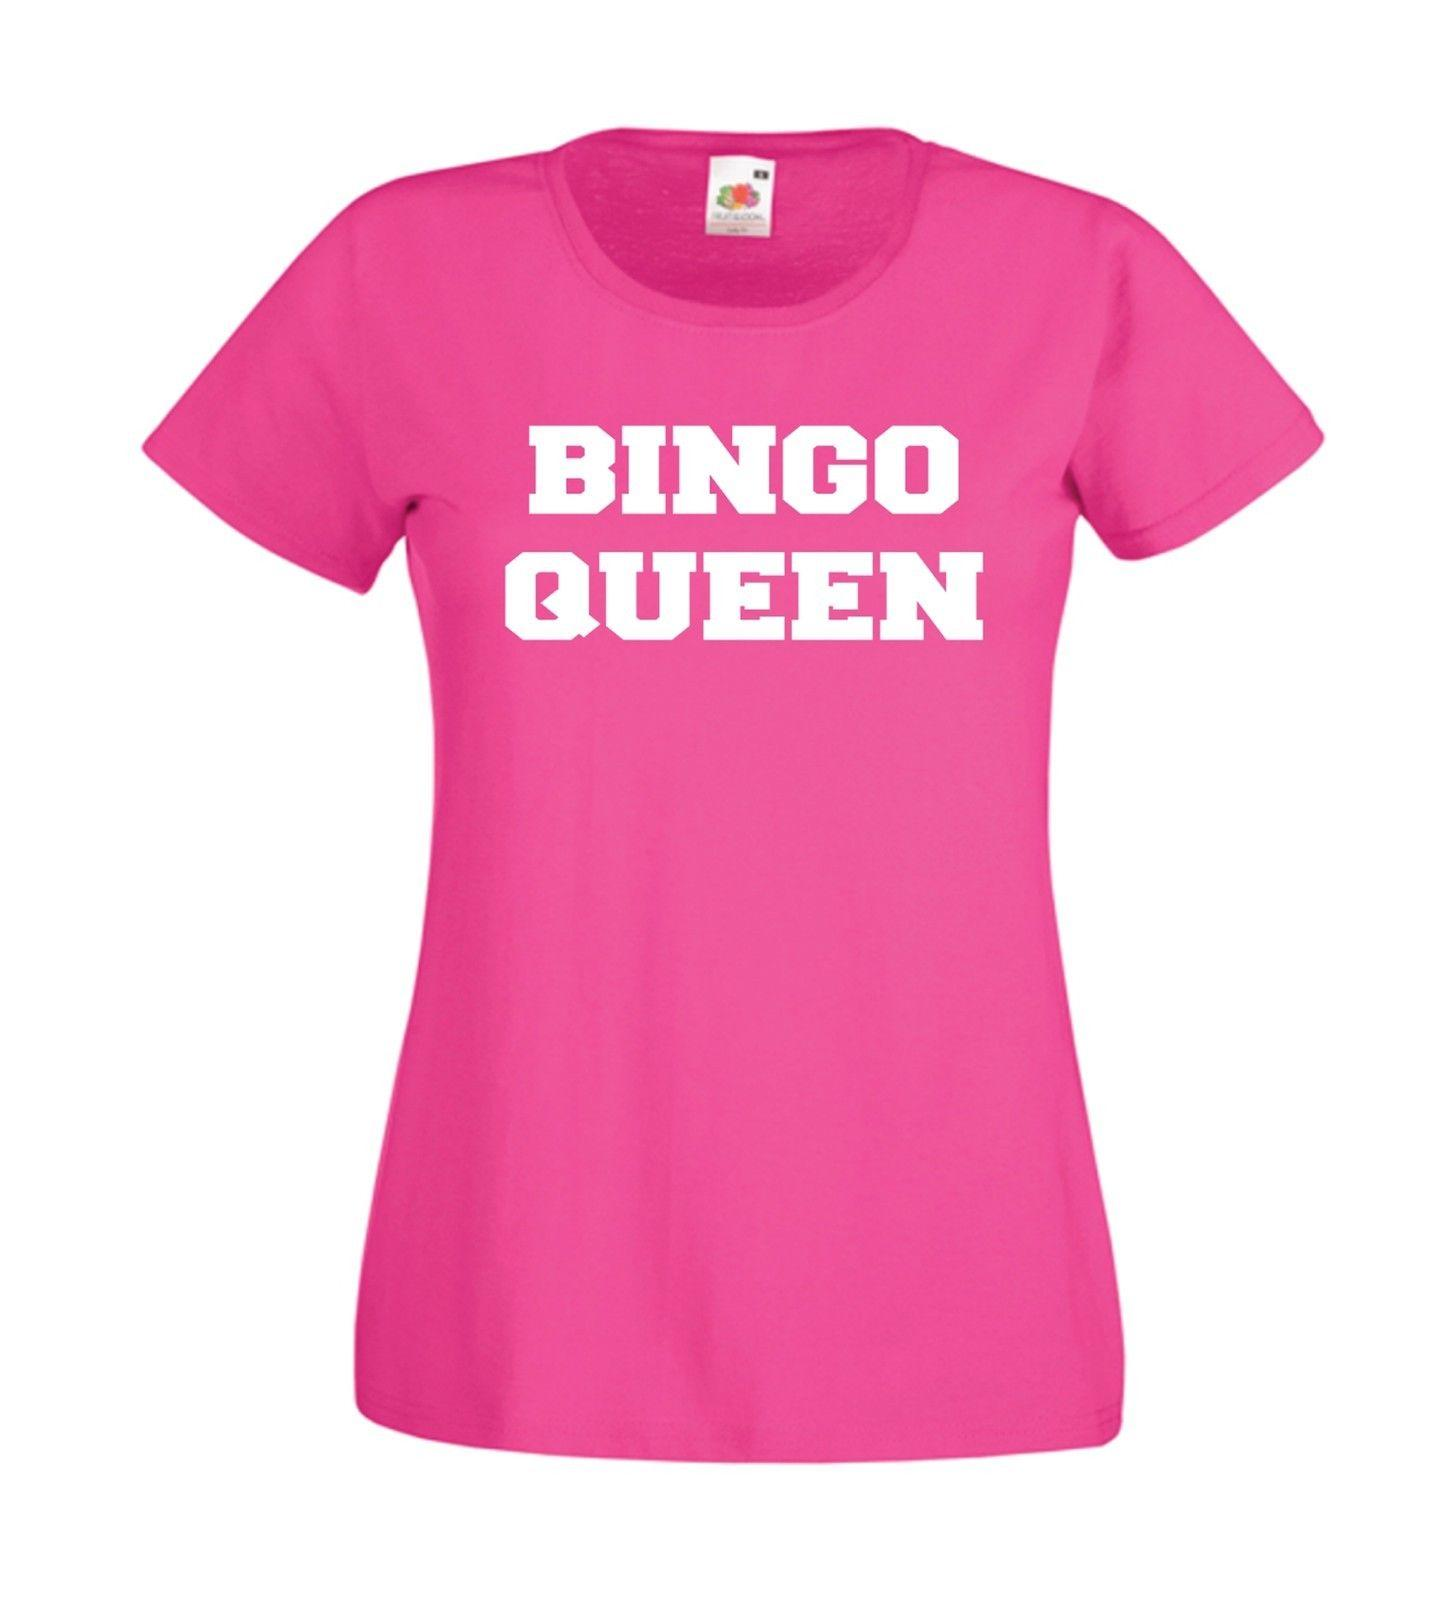 BINGO QUEEN Mothers Grandma Mum Christmas Birthday Gift Top Mens Womens T SHIRTFunny Unisex Casual Tshirt Shirt Quotes Dress From